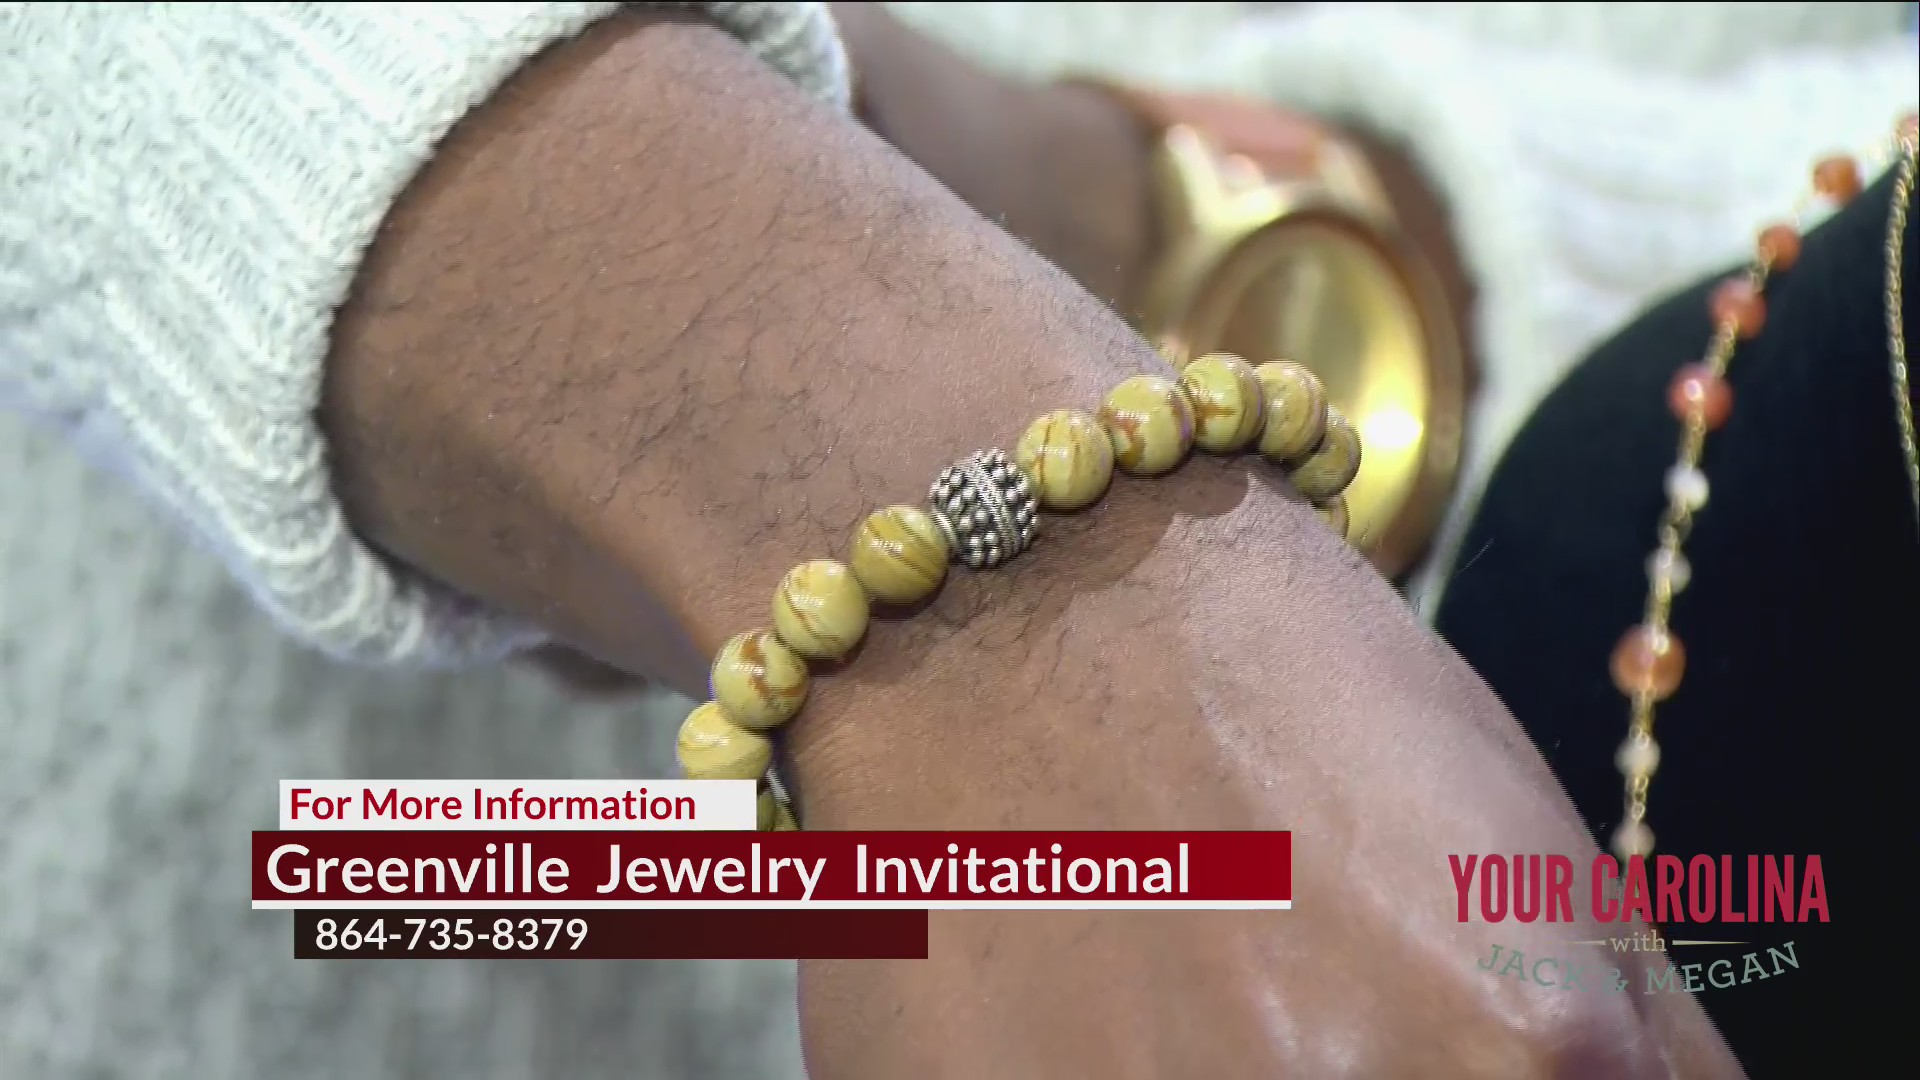 First Annual Greenville Jewelry Invitational